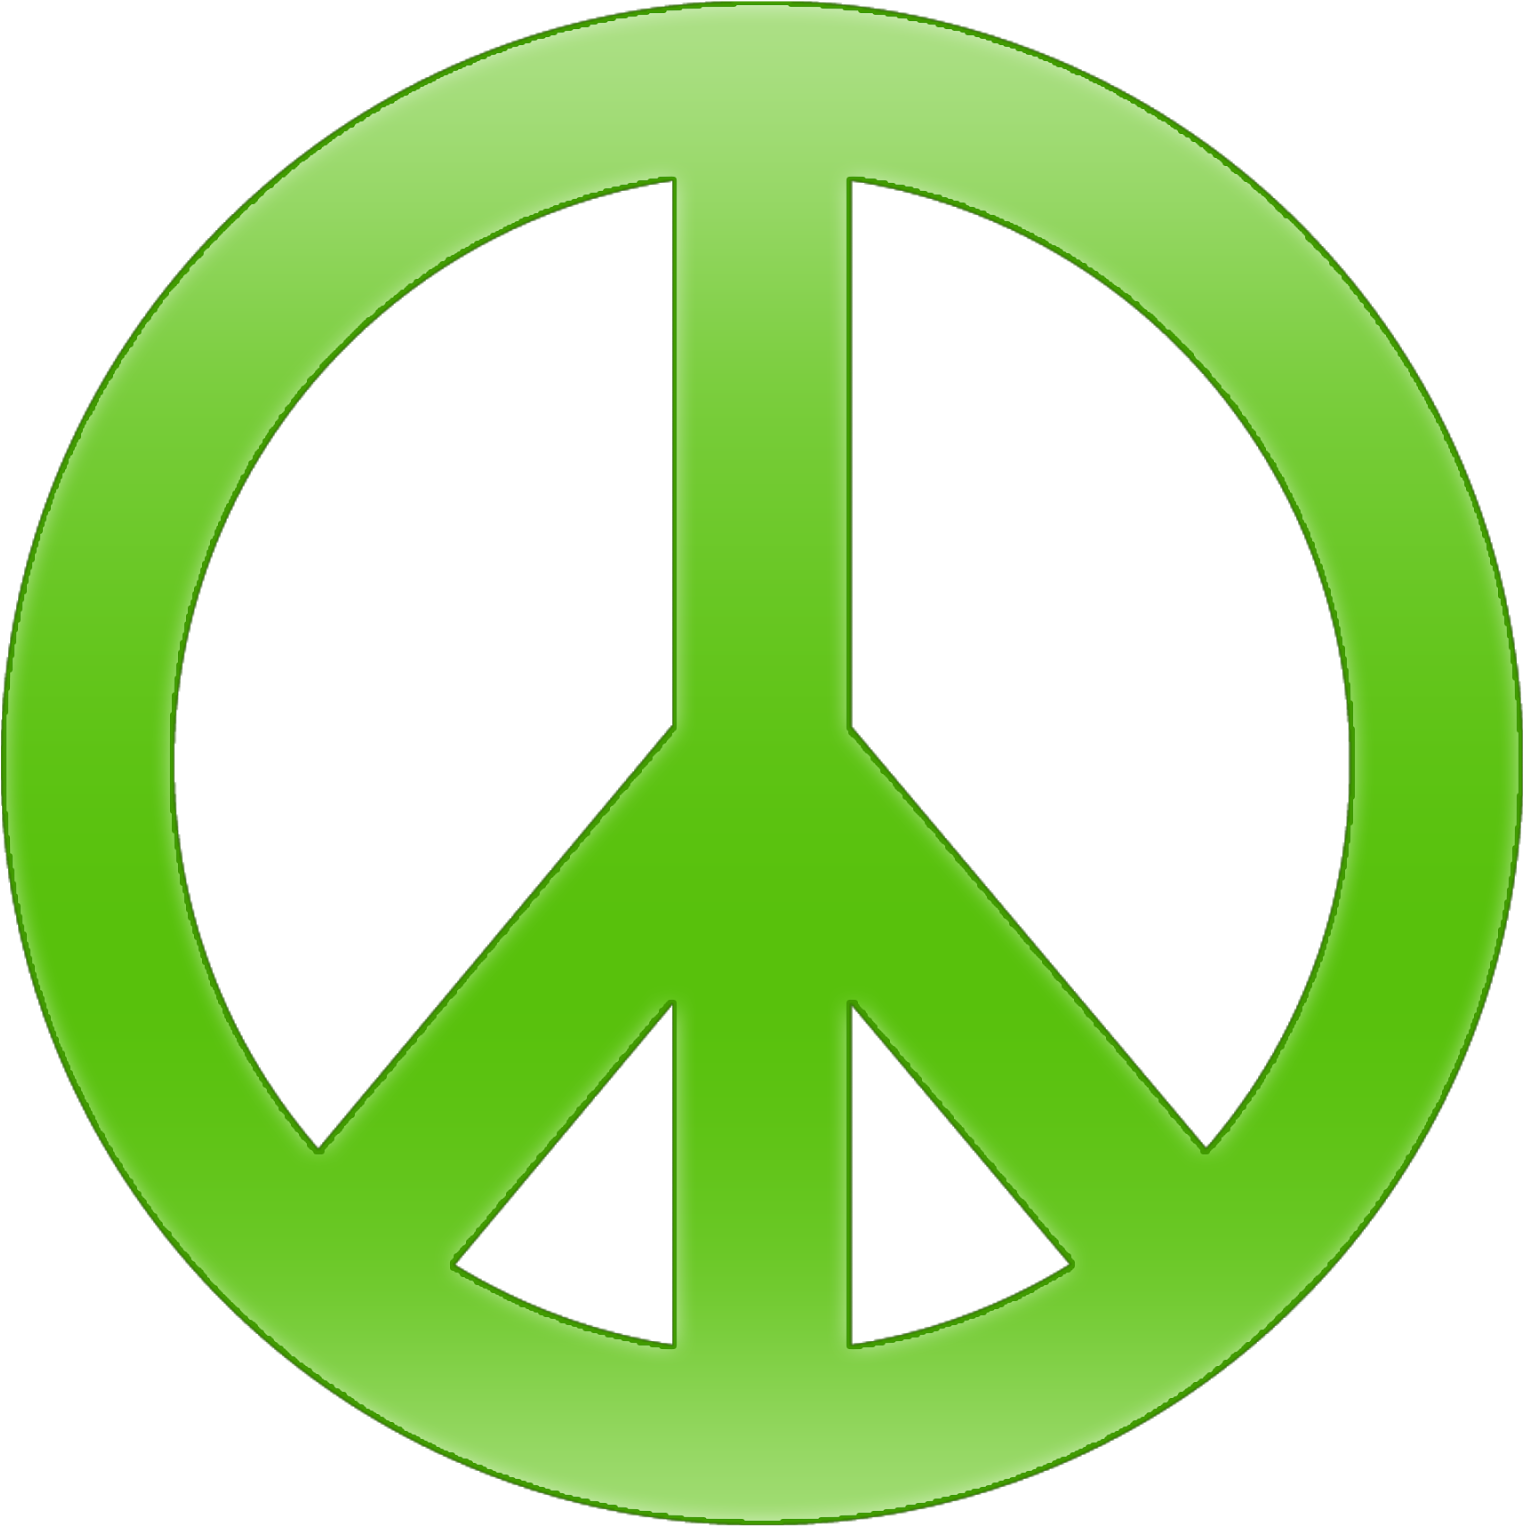 Peace clipart issue global. Sign template orange full